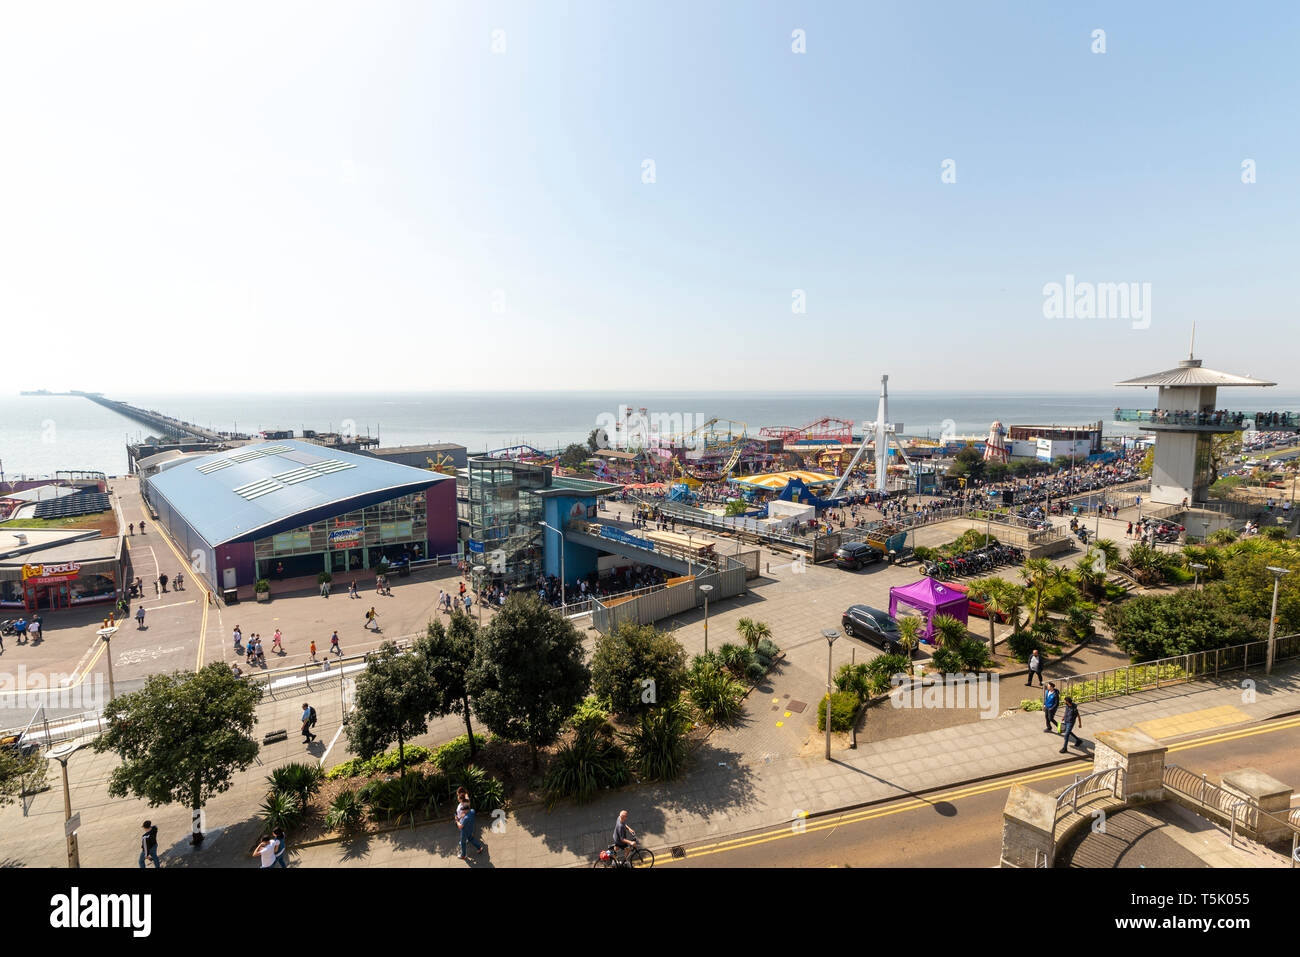 Southend on Sea, Essex, UK seafront on Easter Monday bank holiday. Adventure Island, Southend Pier, observation deck tower. Space for copy - Stock Image